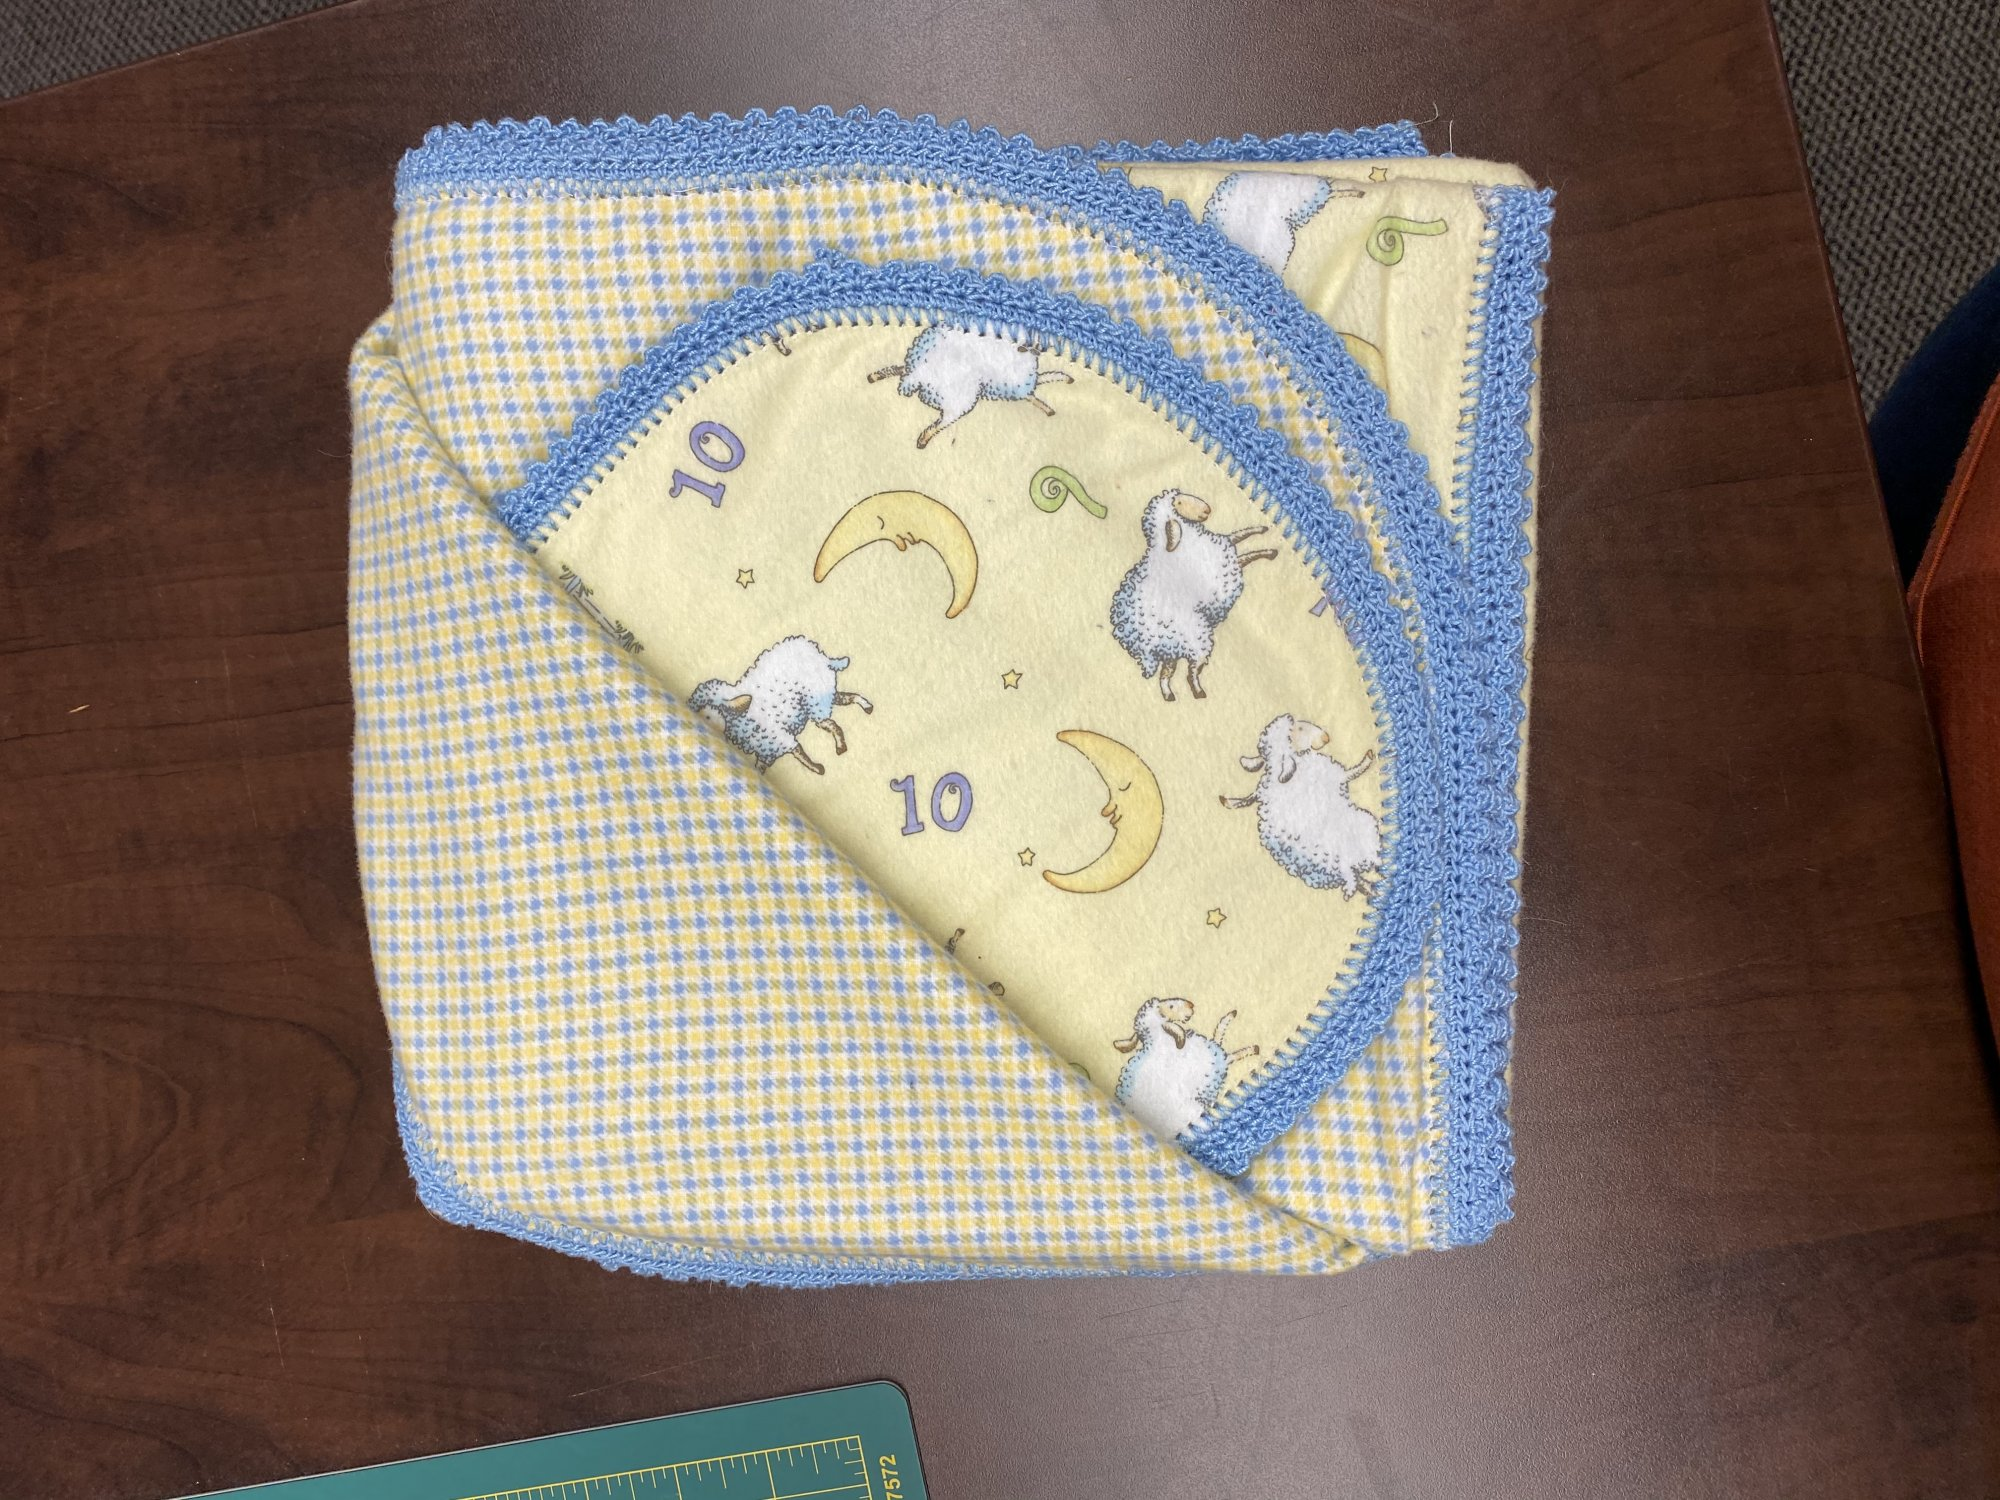 Crocheted Receiving Blanket w/ Burp Cloth - Counting Sheep